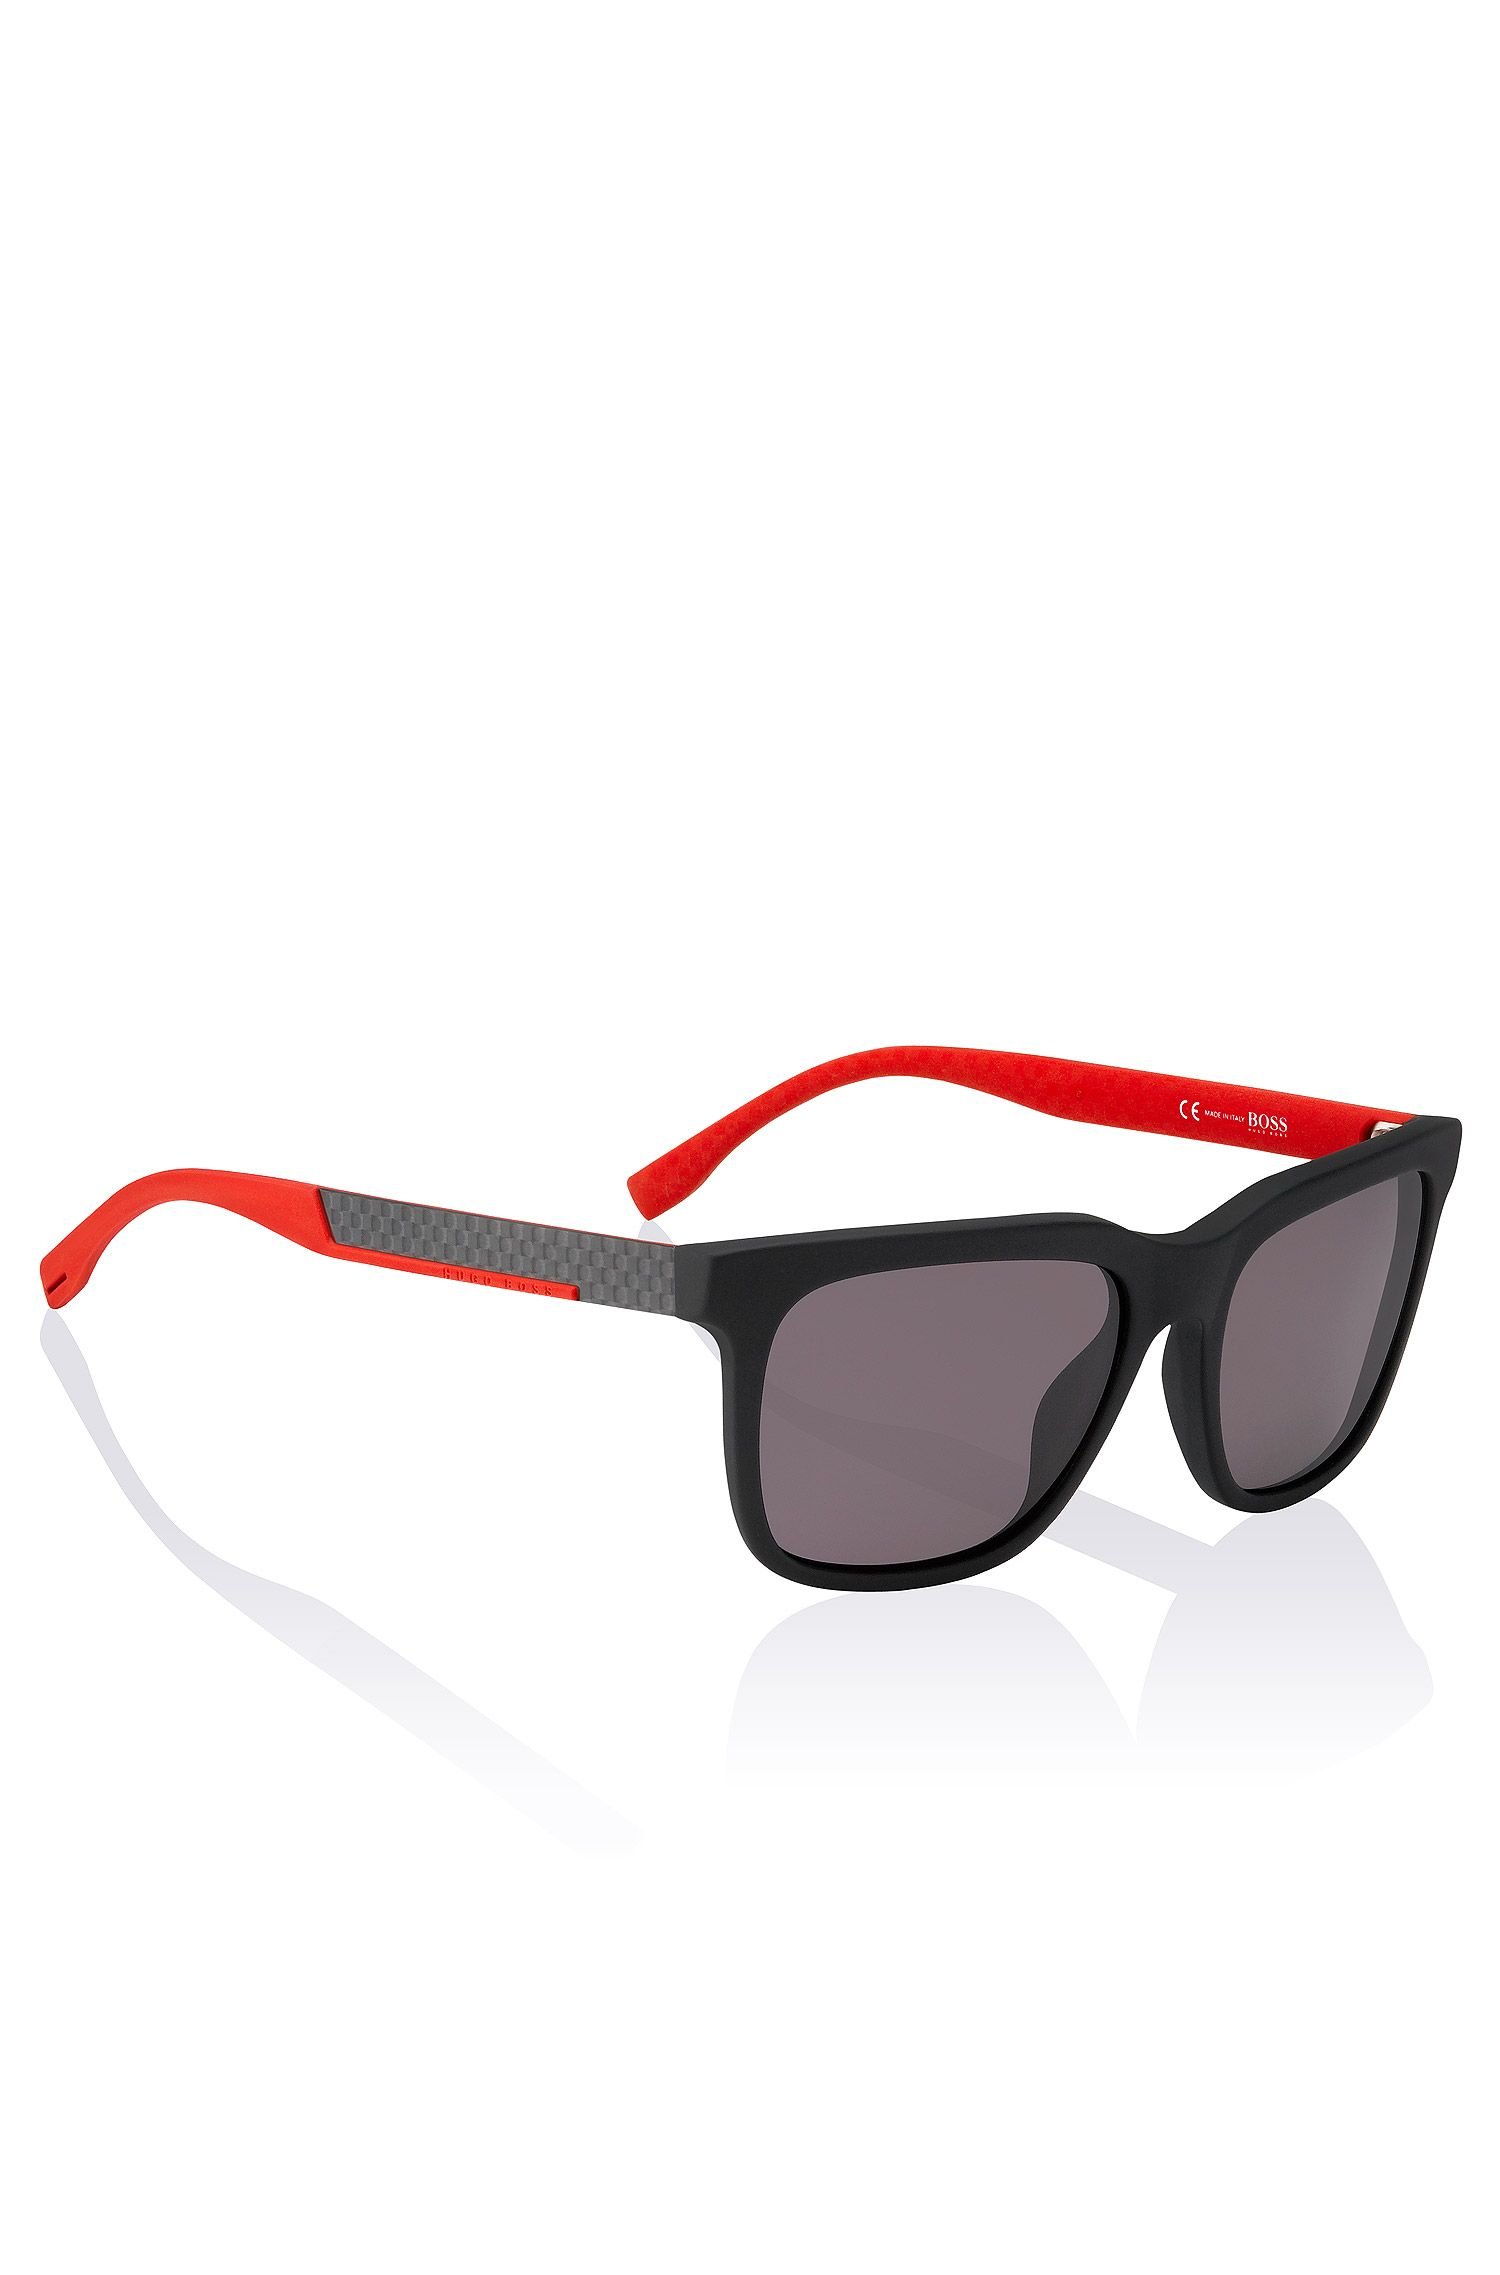 Sunglasses 'BOSS 0670'